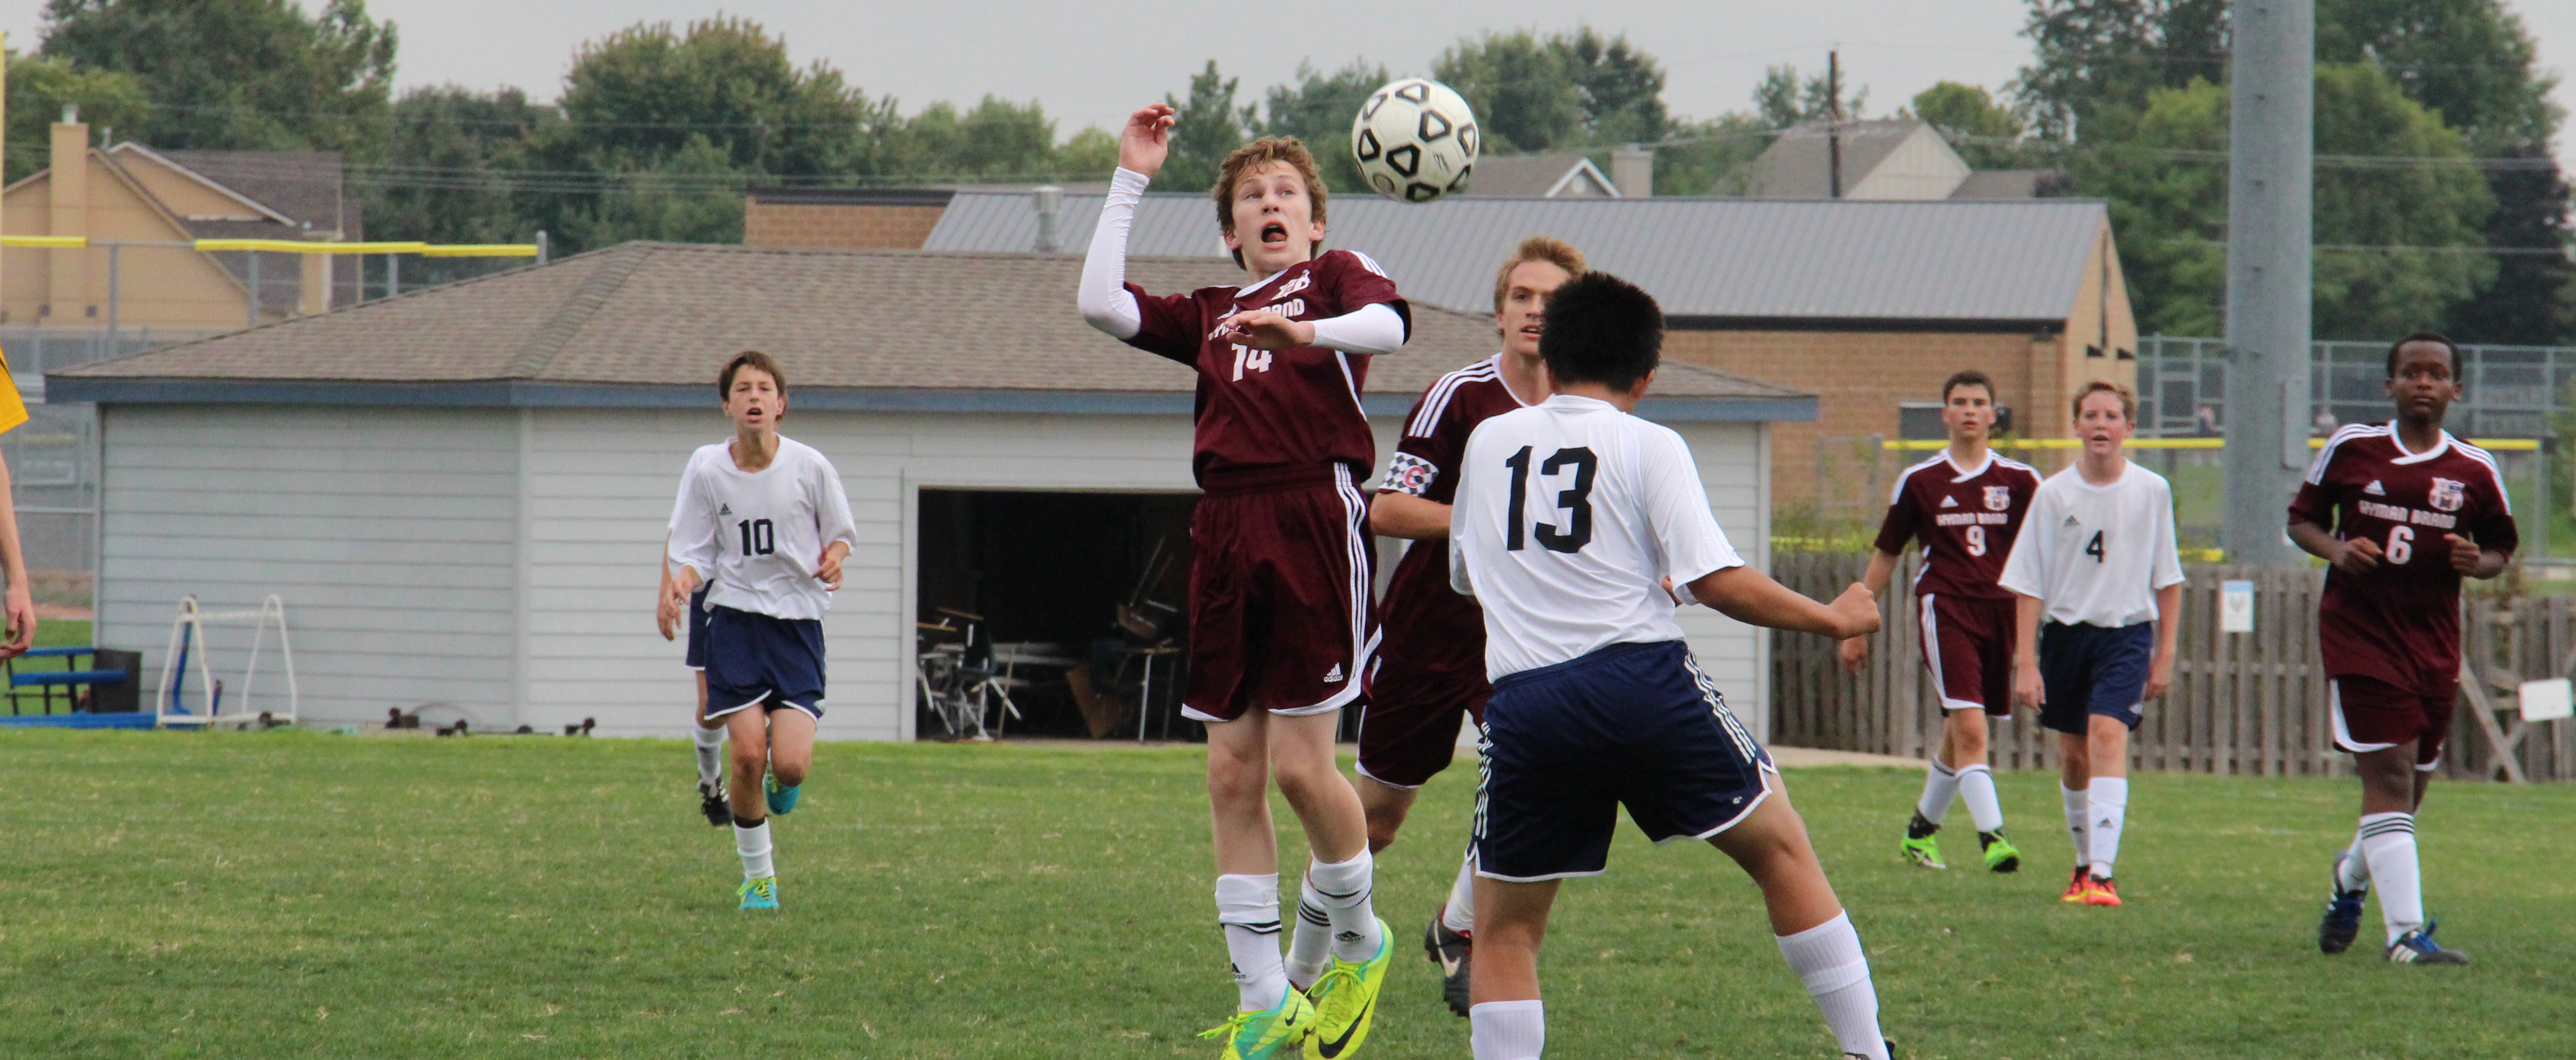 HBHA Soccer, Tennis, and Cross Country Update